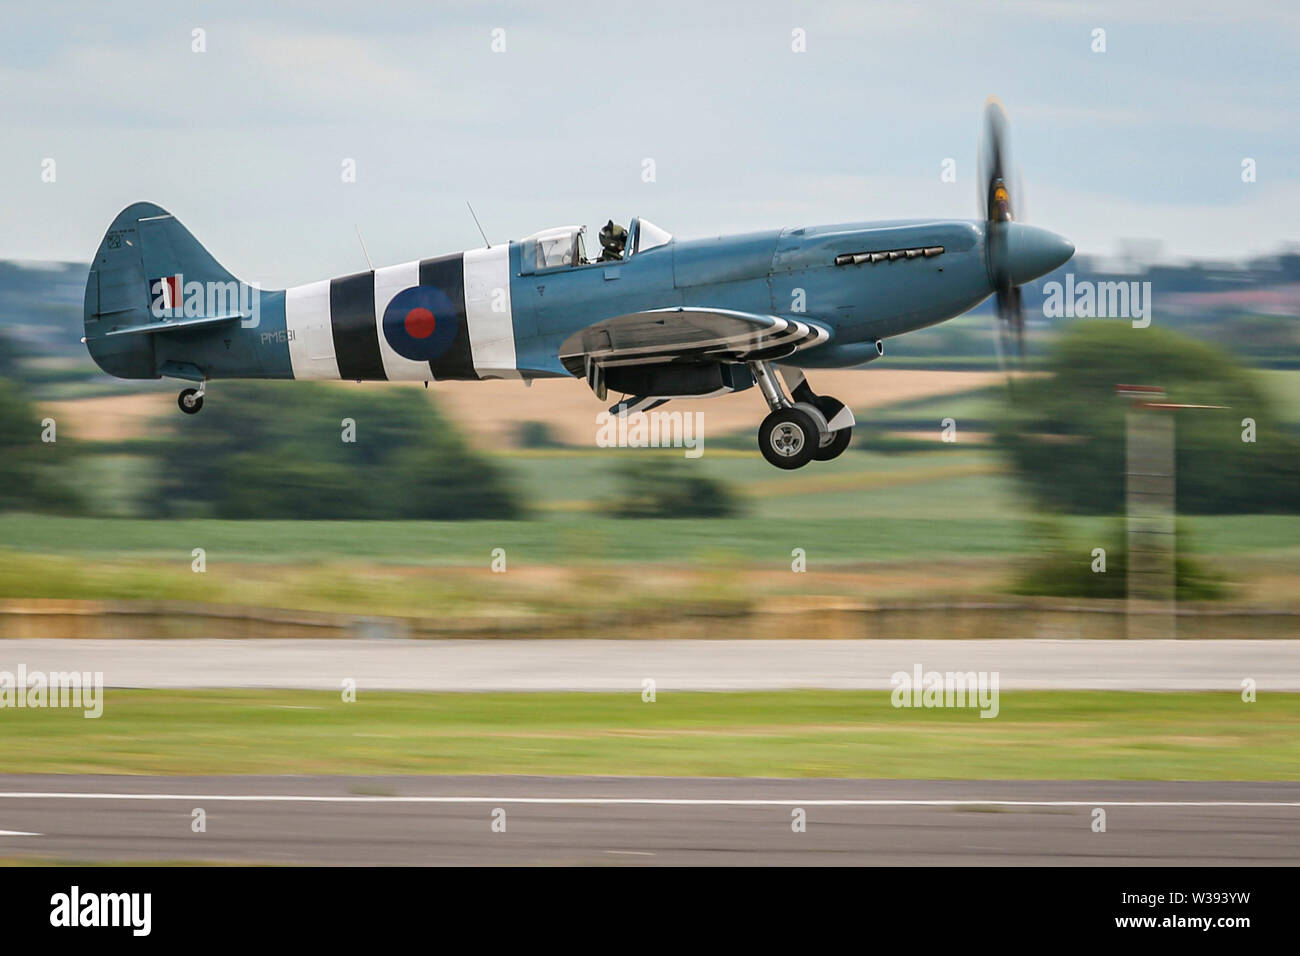 Yeovilton, UK. 13th July, 2019. A Spitfire of the Battle of Britain Memorial Flight, landing at the airshow in Yeovilton. Credit: Matthew Lofthouse/Alamy Live News Stock Photo